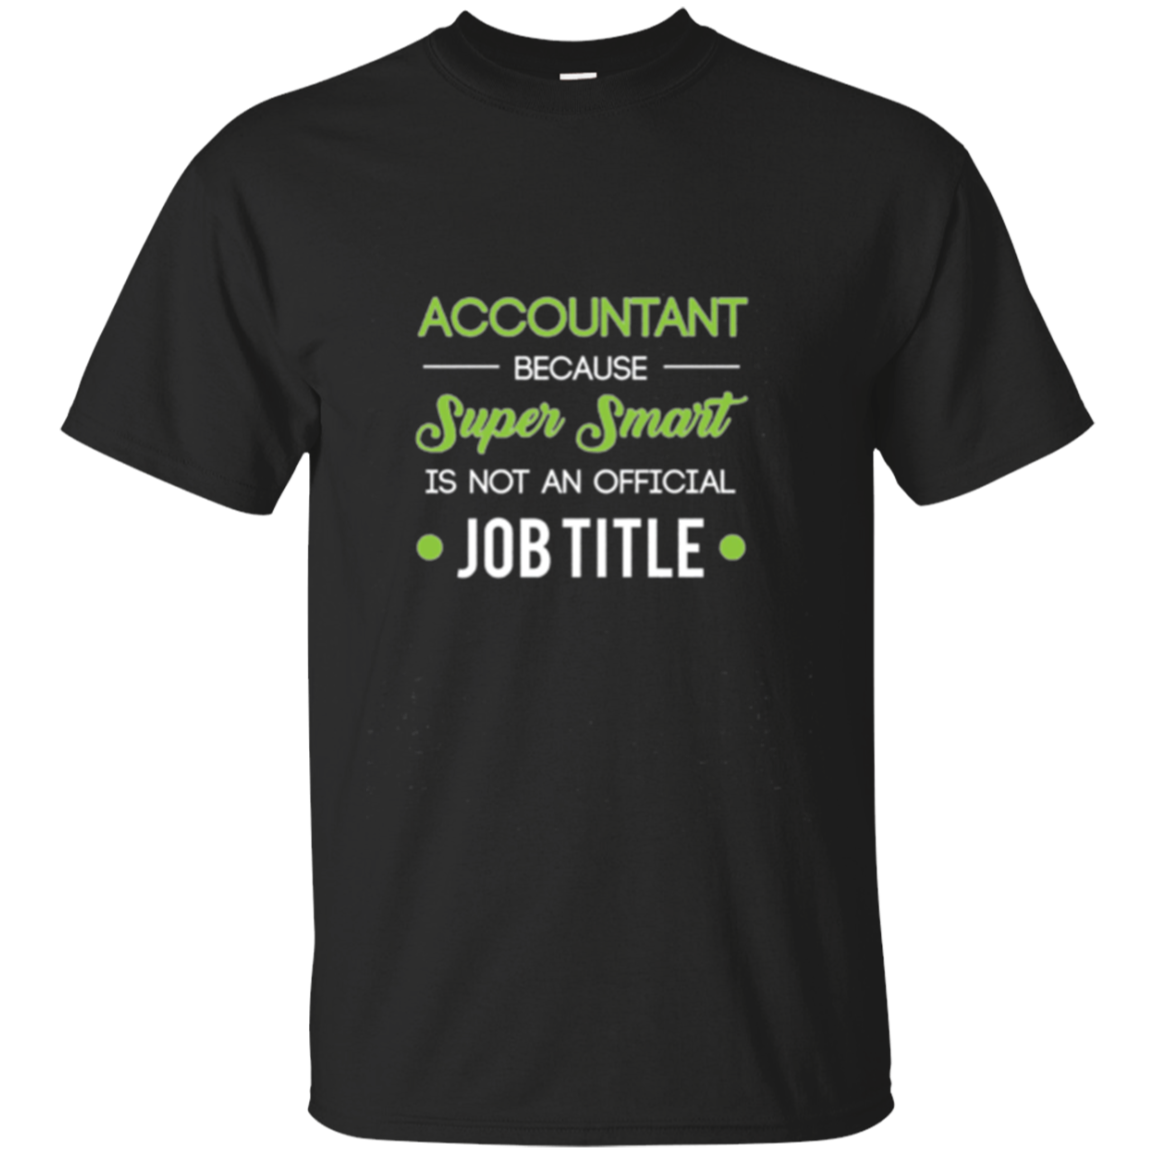 Funny Accountant CPA Long Sleeve Shirt Gift - Job Title